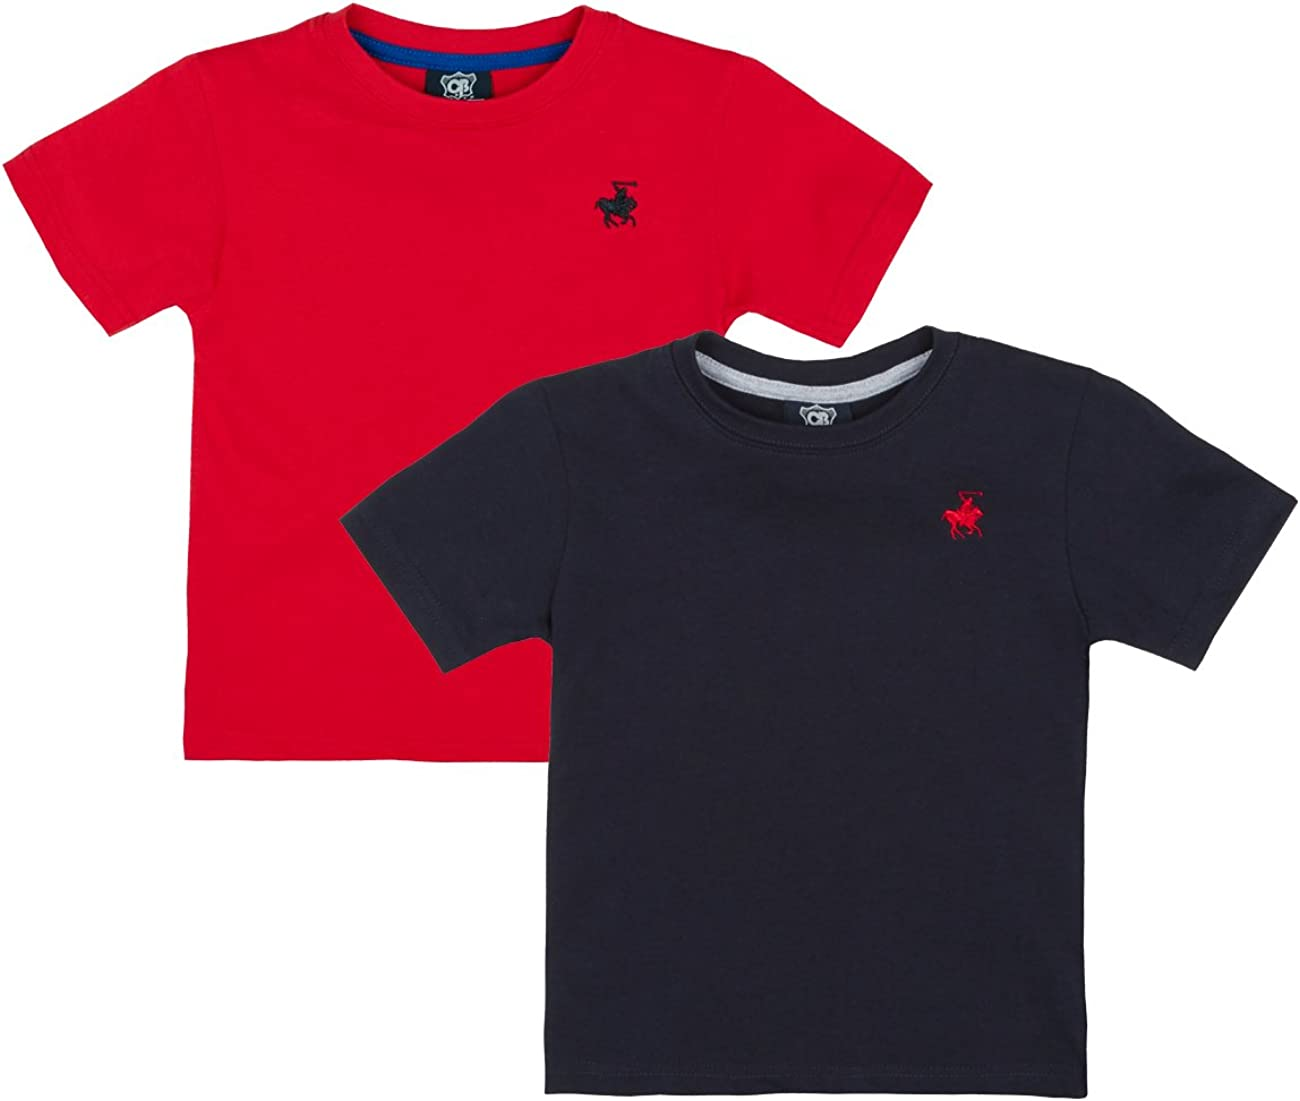 Cargo Bay Boys Short Sleeved Embroidered Plain T-Shirts